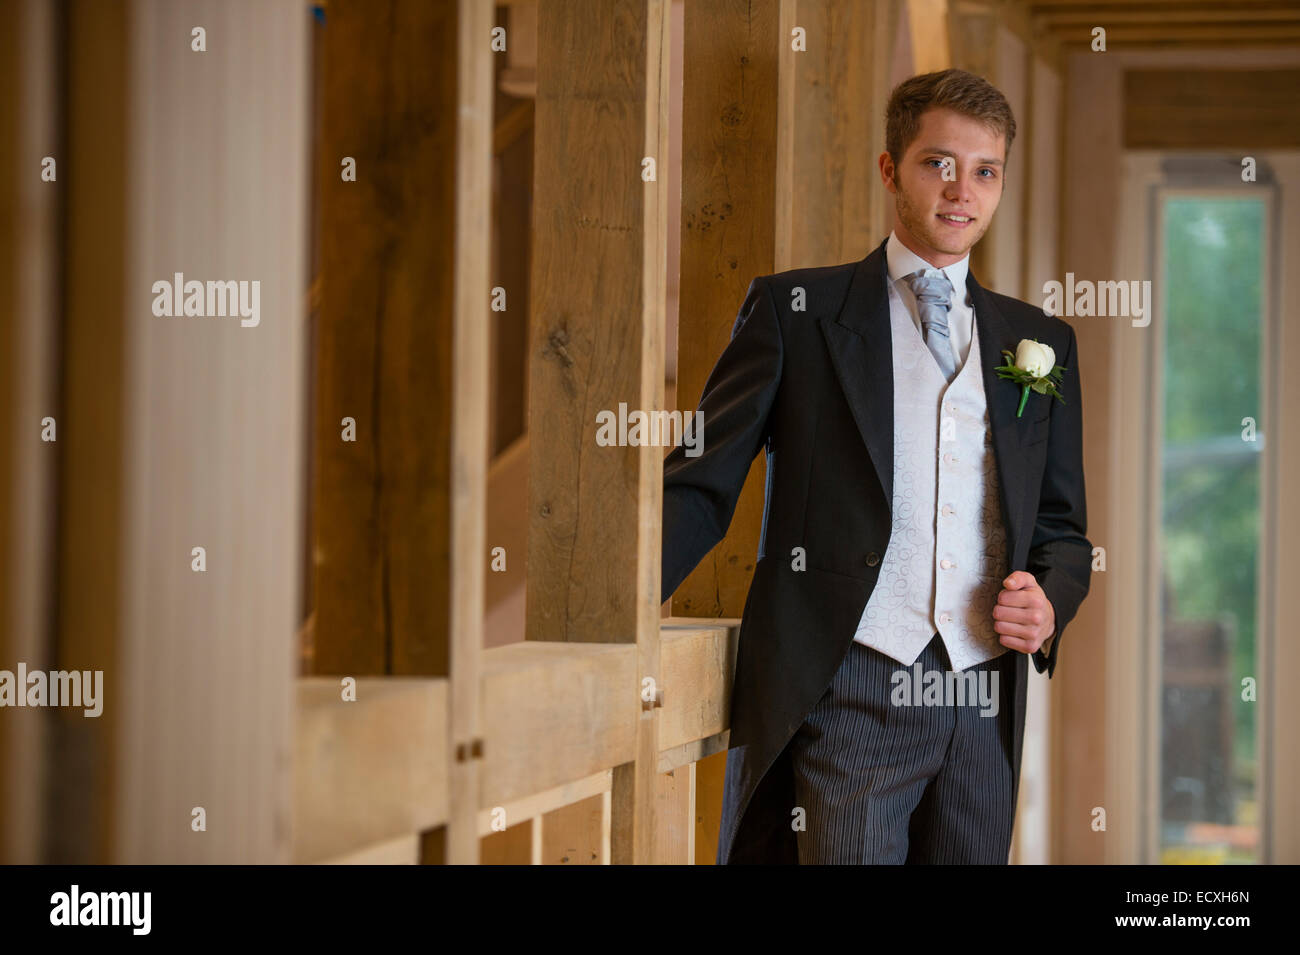 Getting married / Wedding day UK: a young man , the groom, dressed ...